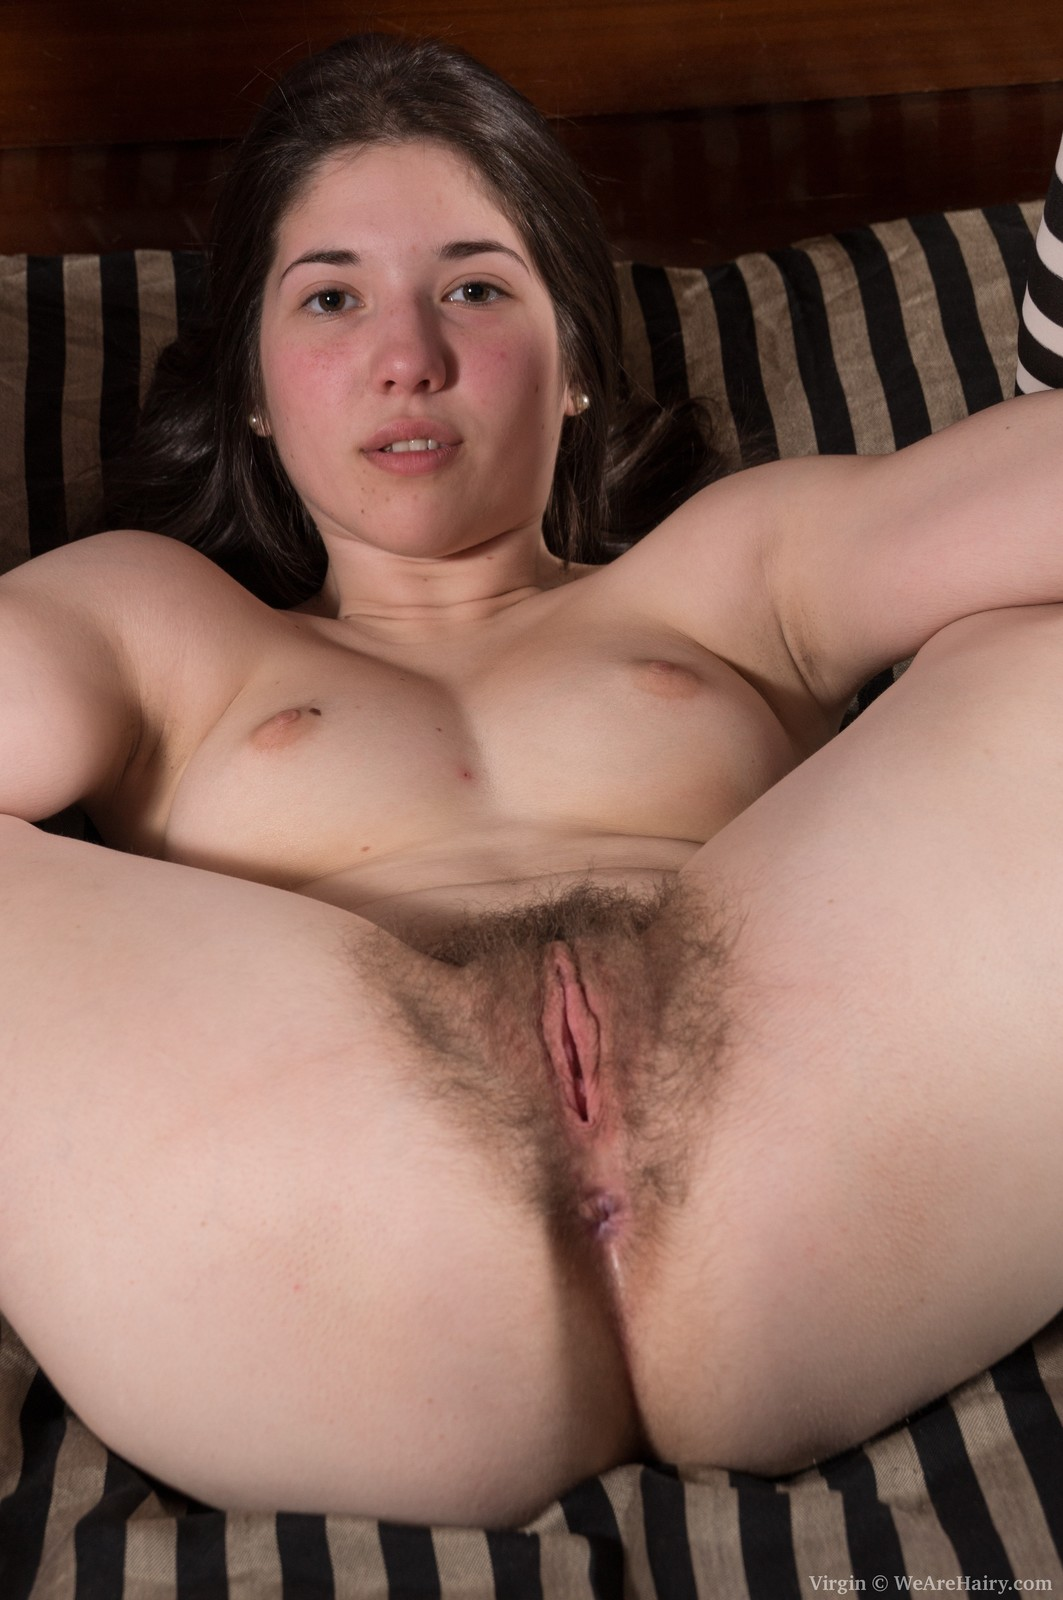 And hairy nude girls virgin pussy sorry, that